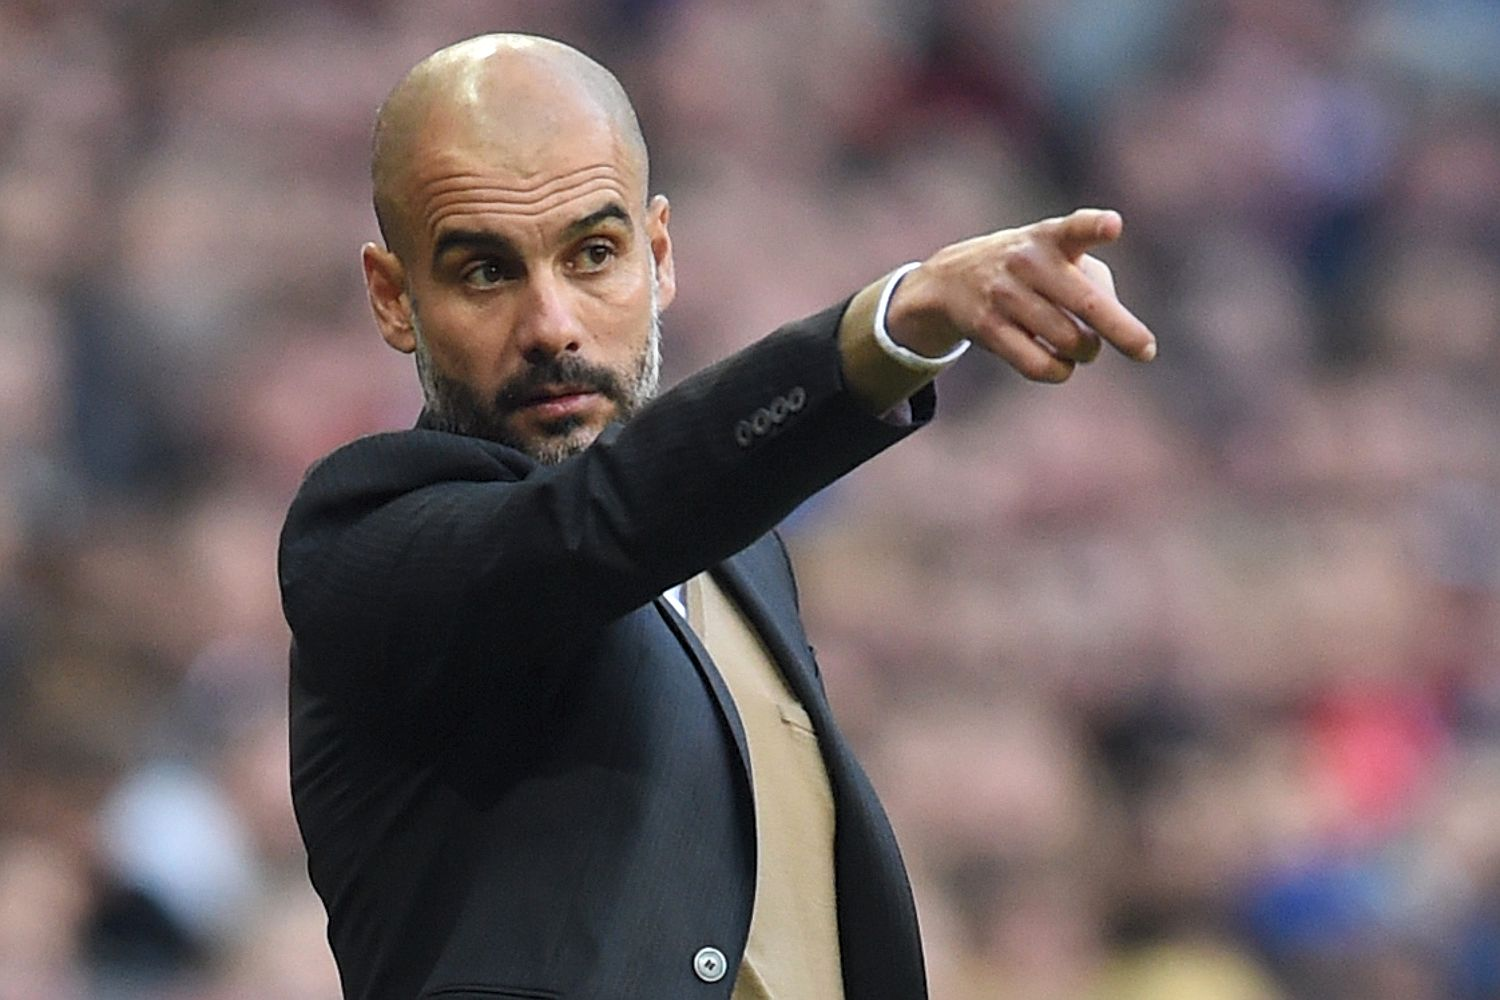 Guardiola Thumbs Up City's 'High Level Display' Vs Monchengladbach